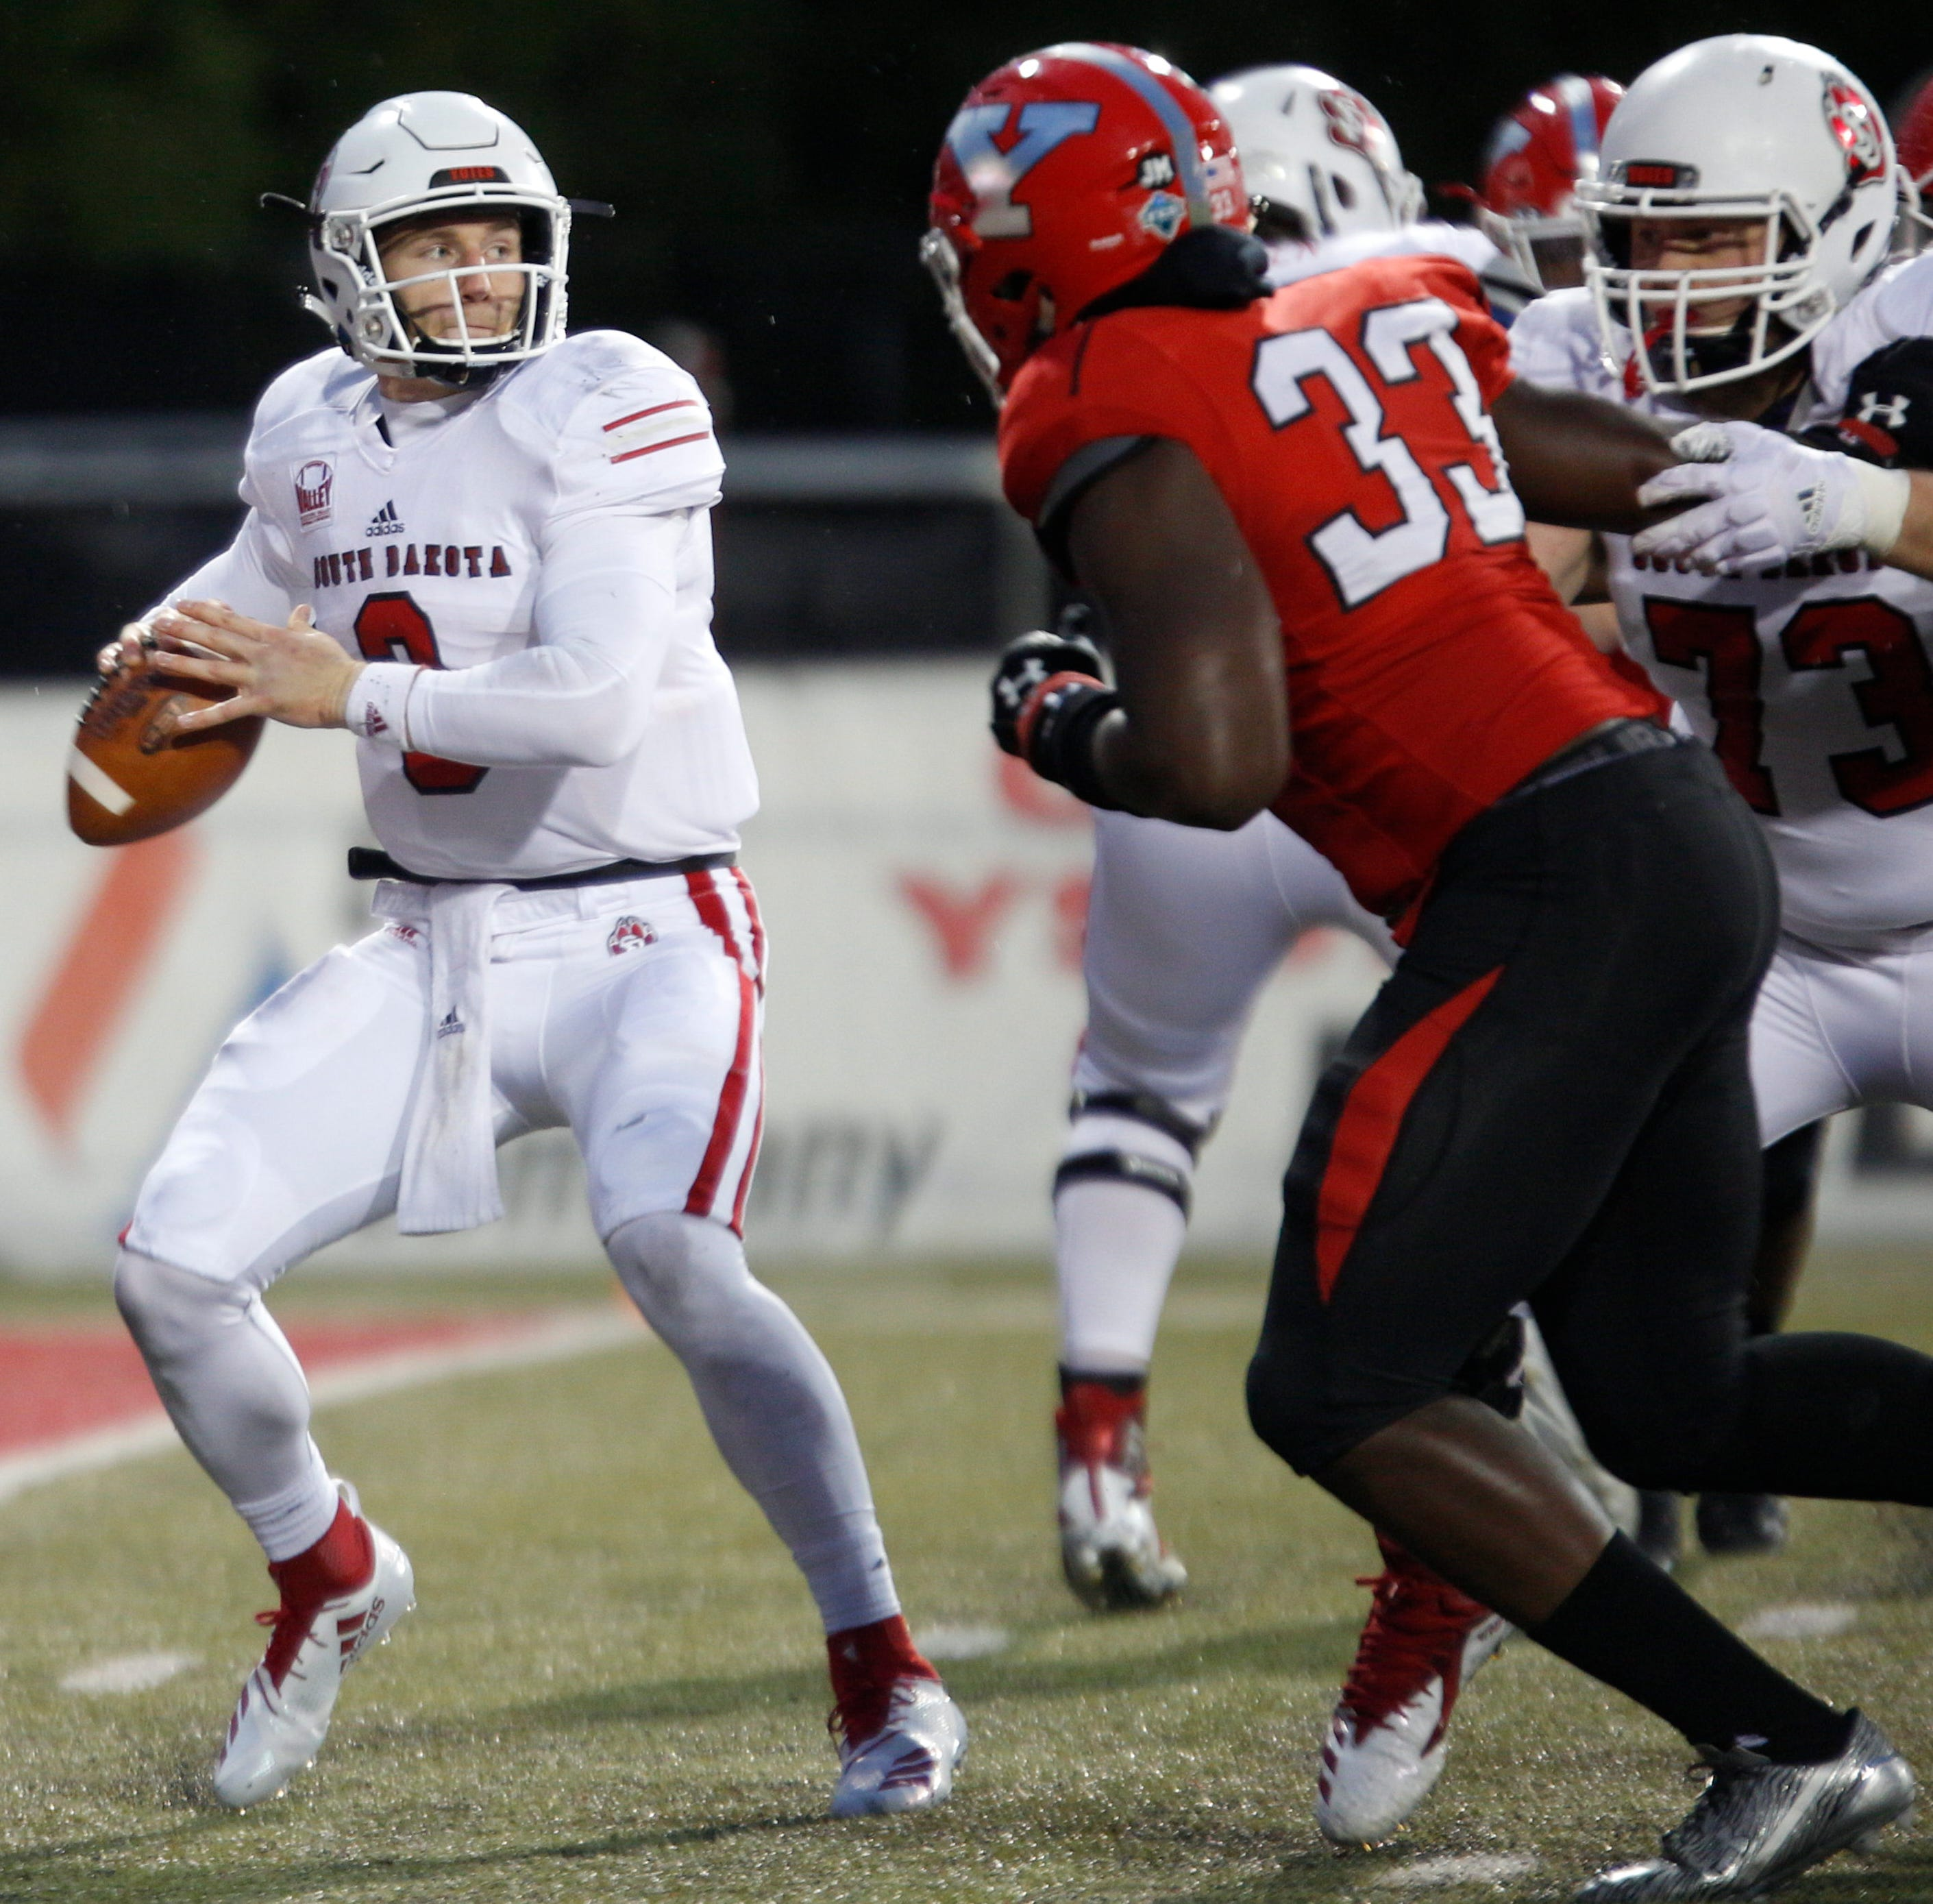 South Dakota's Austin Simmons gets ready to throw the ball during the first half of their game against Youngstown State at Stambaugh Stadium on Saturday. EMILY MATTHEWS | THE VINDICATOR